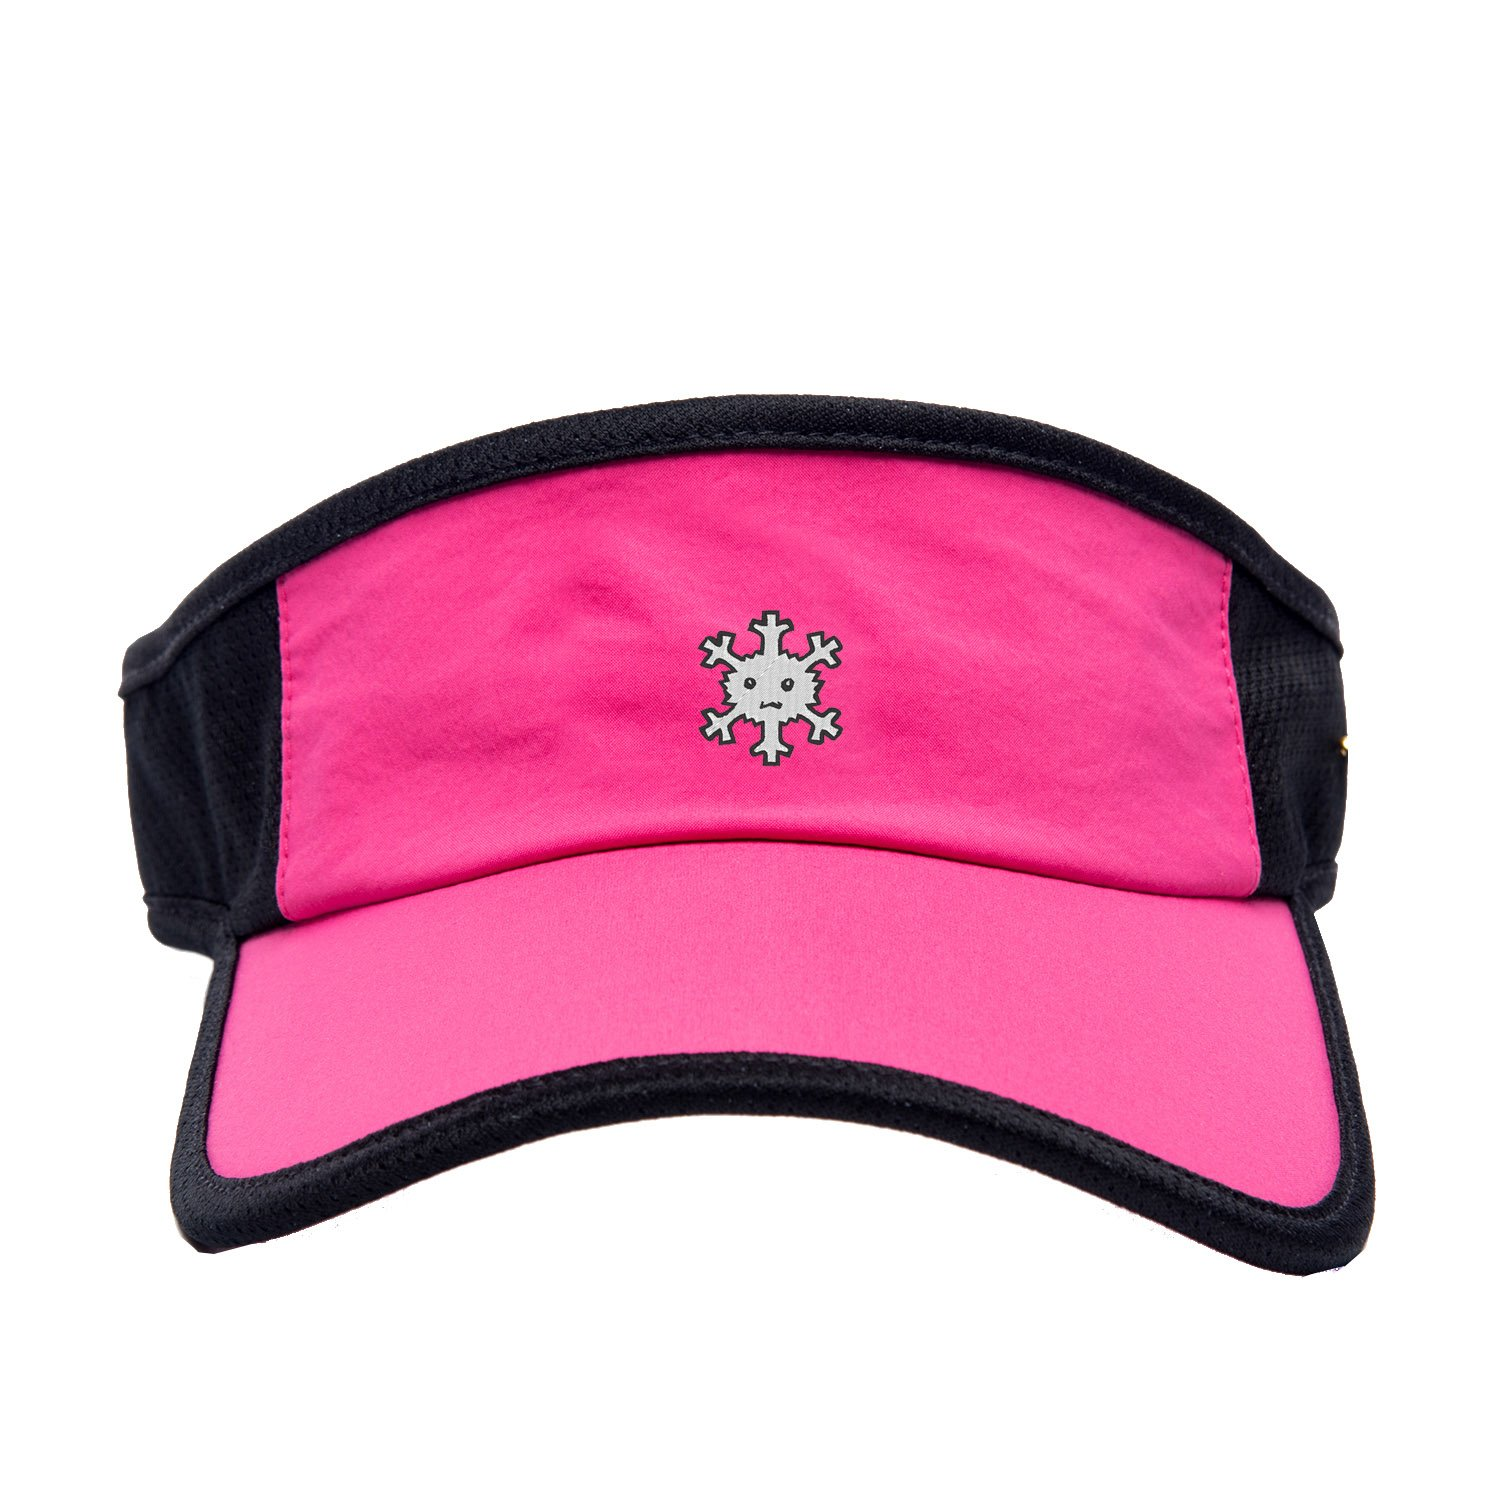 Women Outdoor Visor Embroidered Snowflakes Face Sun Hat Running Cap (Pink)  at Amazon Women s Clothing store  8f0bb20e8ff